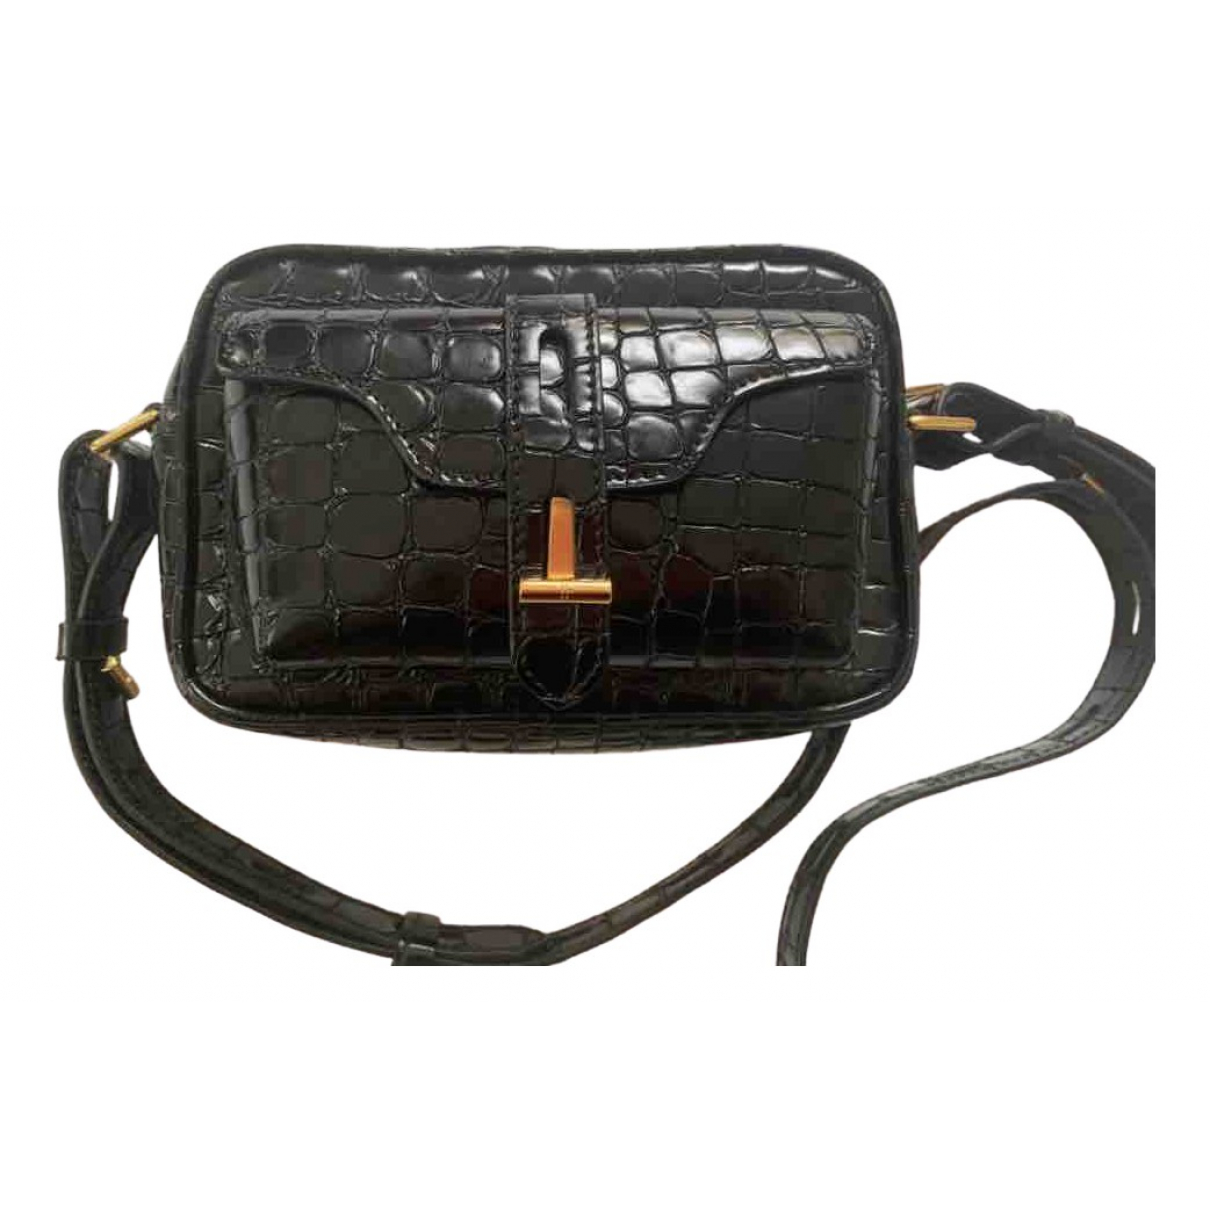 Tom Ford \N Black Patent leather handbag for Women \N